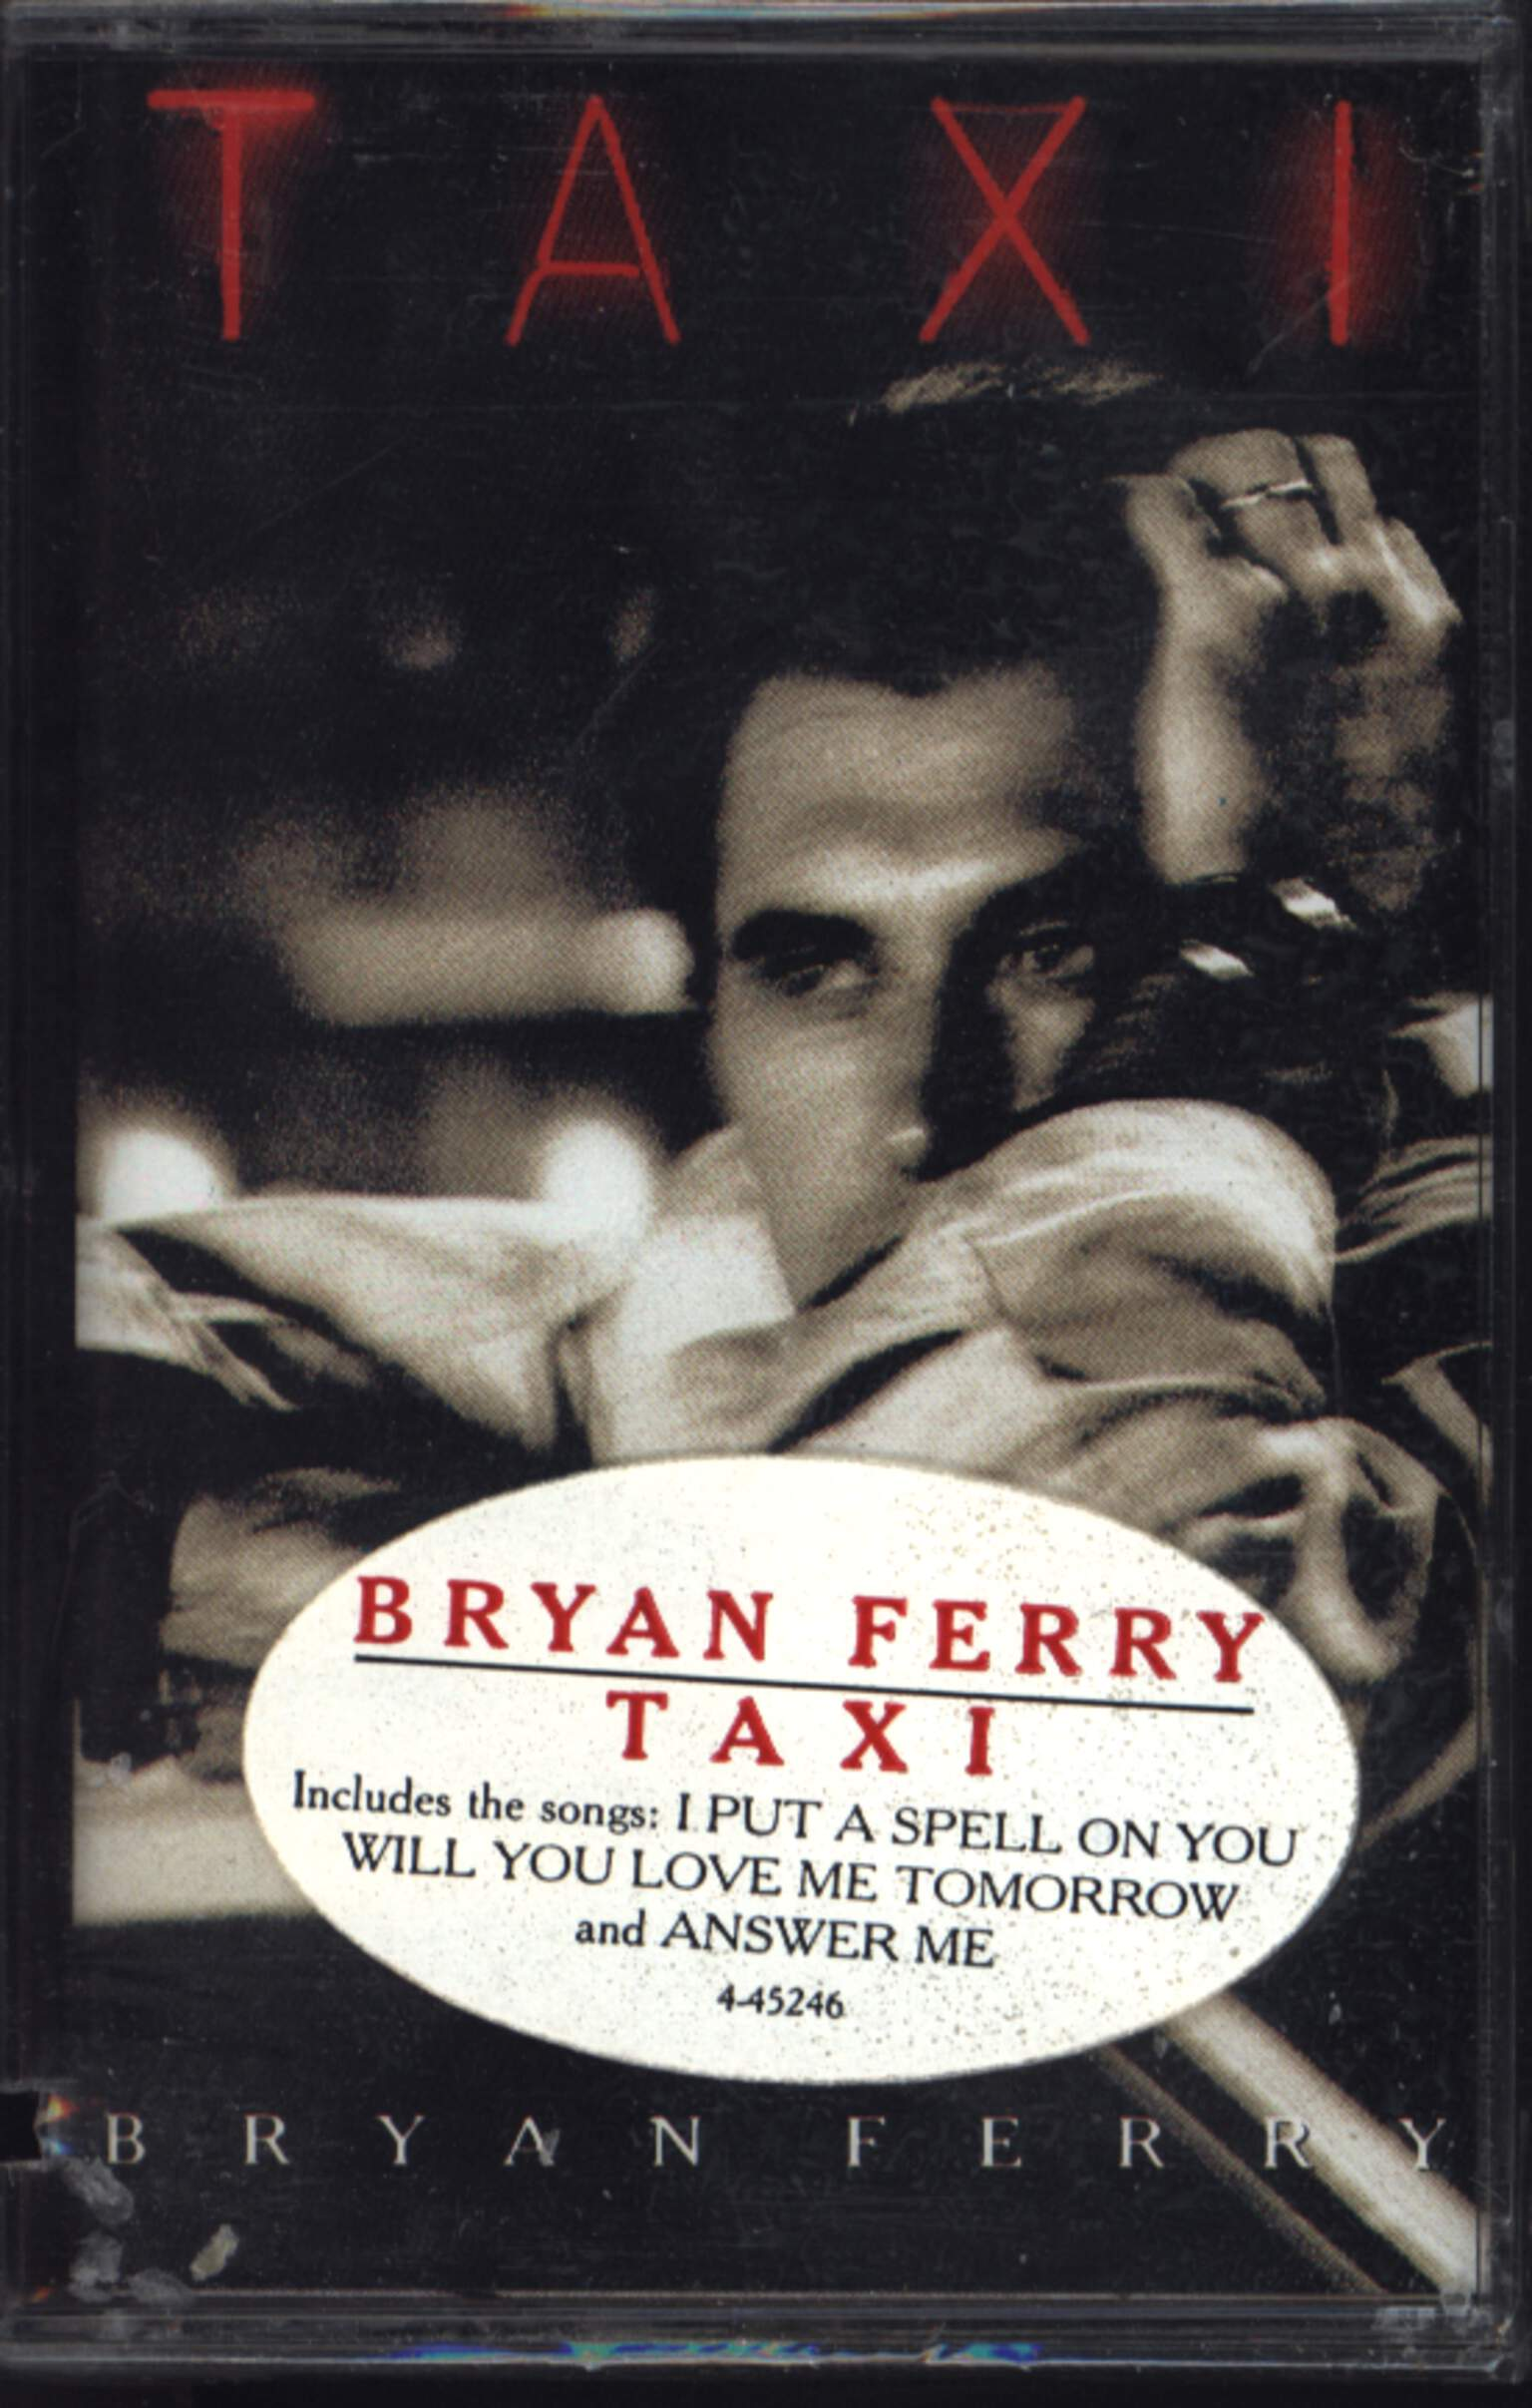 Bryan Ferry: Taxi, Compact Cassette